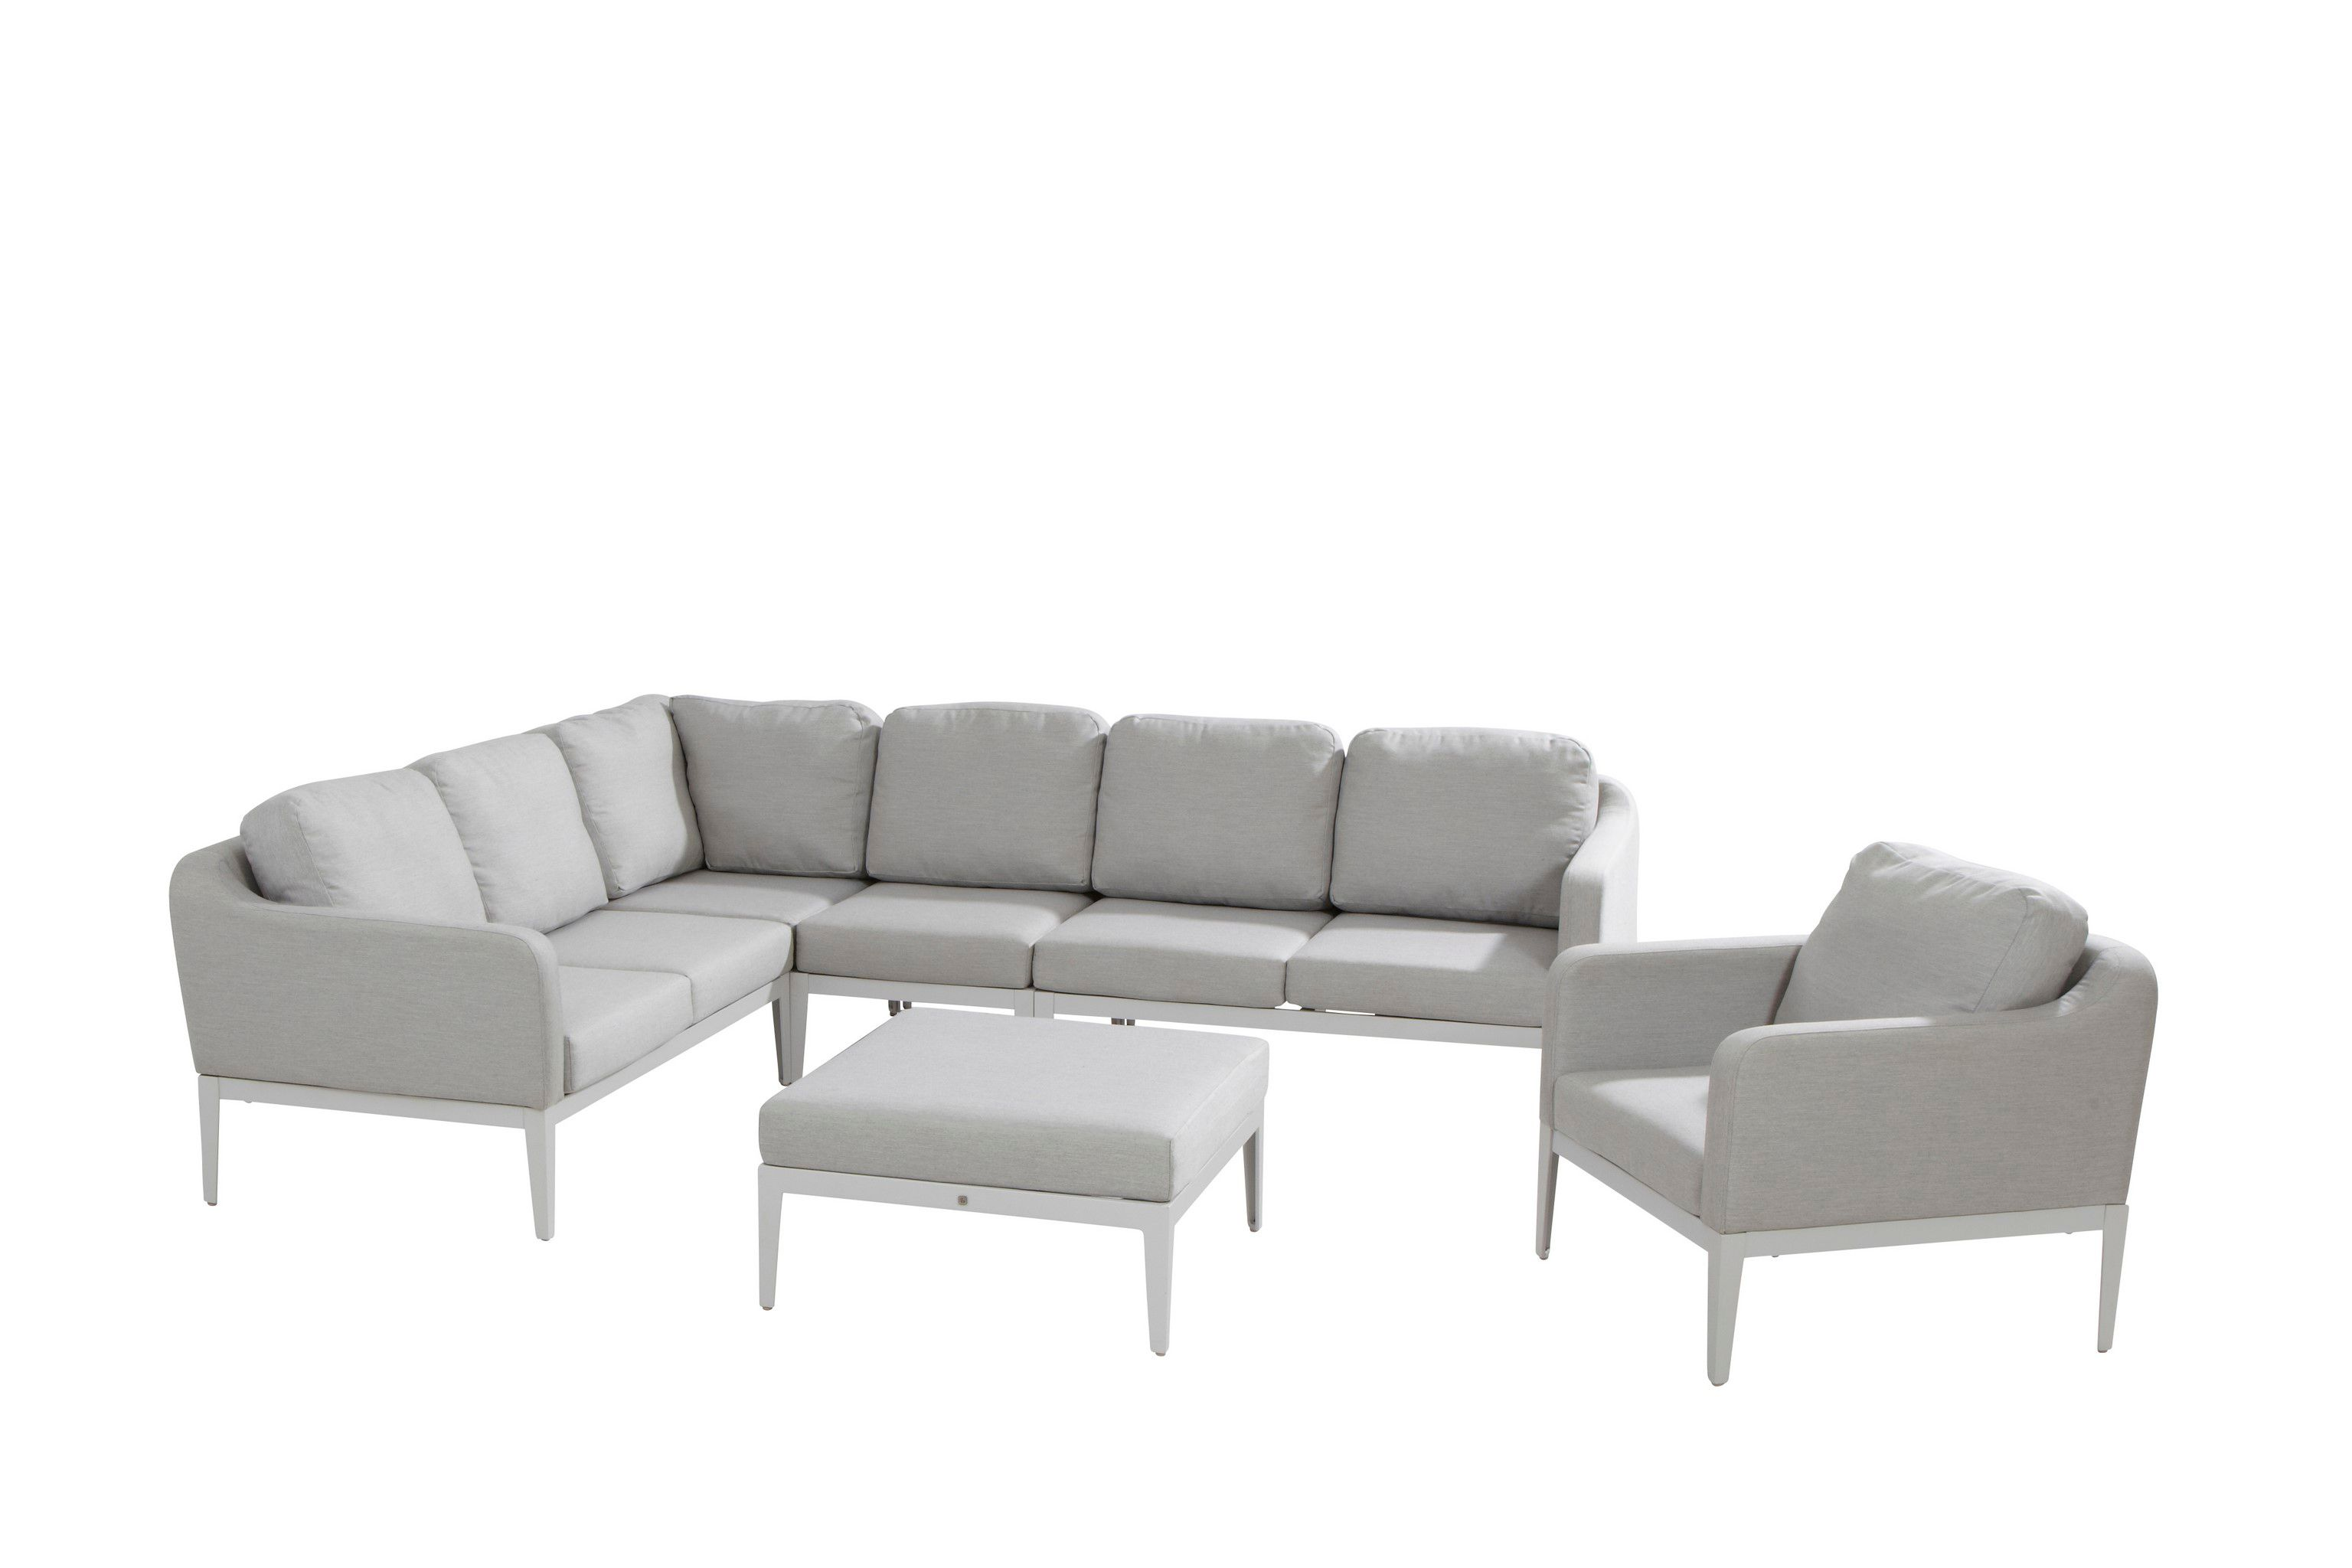 Image of 4 Seasons Outdoor Almeria Luxury Corner Set